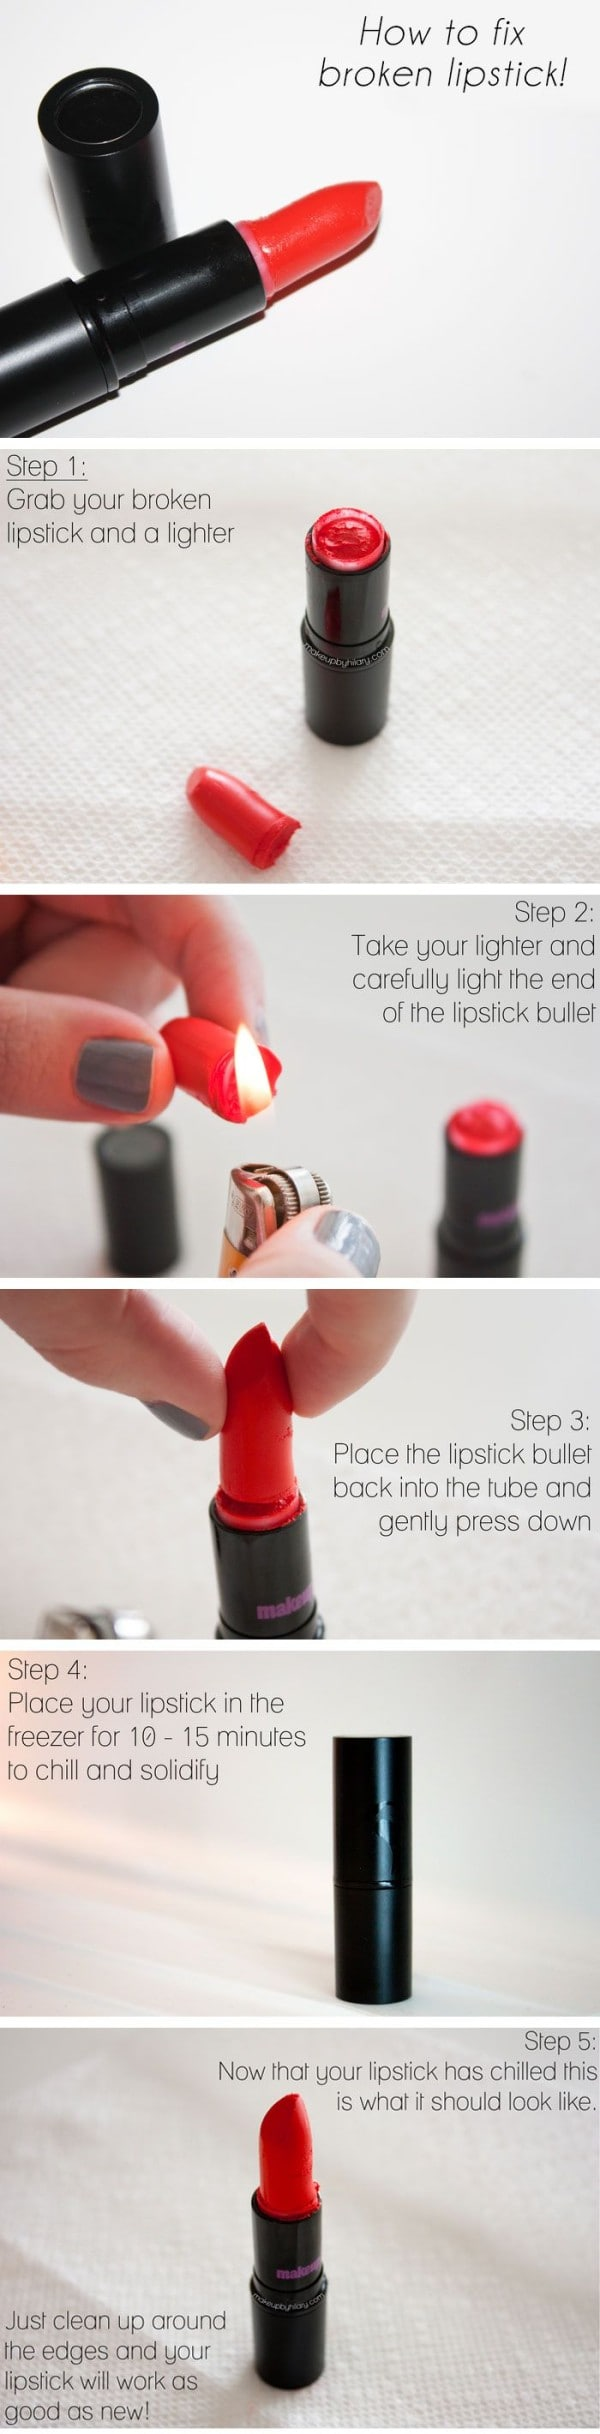 10 Absolutely Amazing Makeup Hacks That Will Save YOur Budget And Time